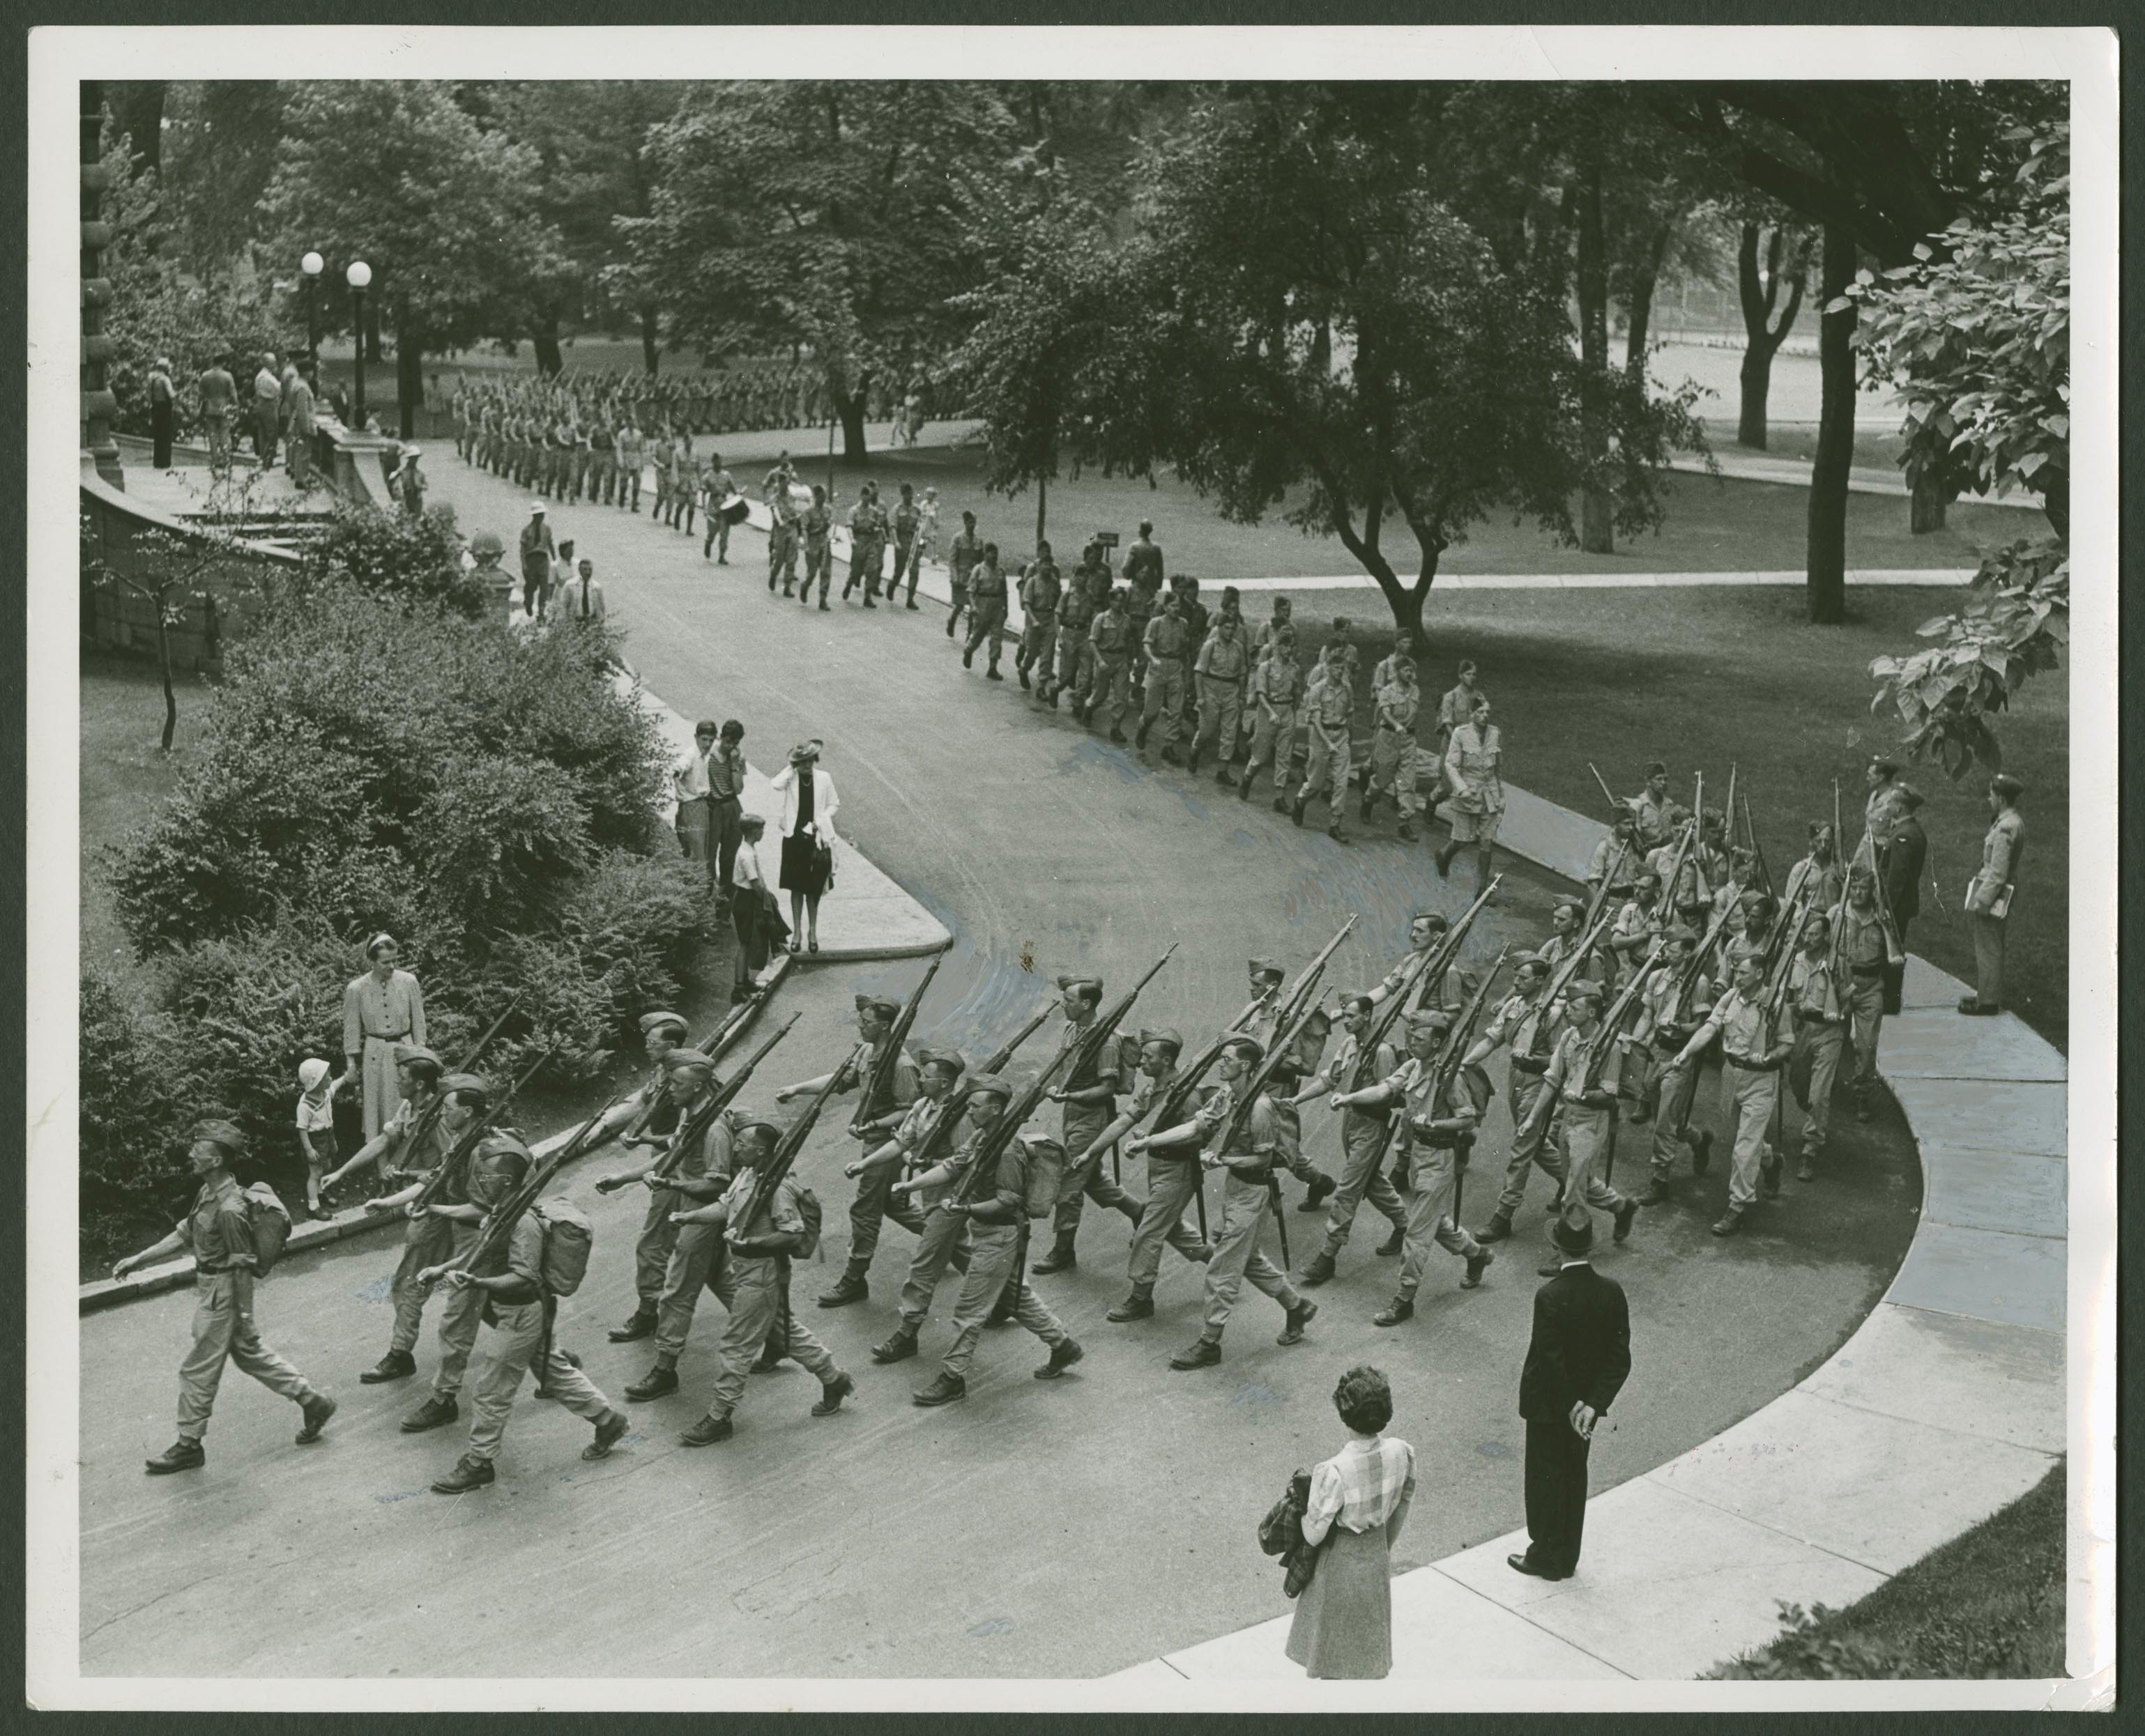 The McGill contingent of the Canadian Officers' Training Corps parading on lower campus in 1941 (Photo: McGill University Archives)